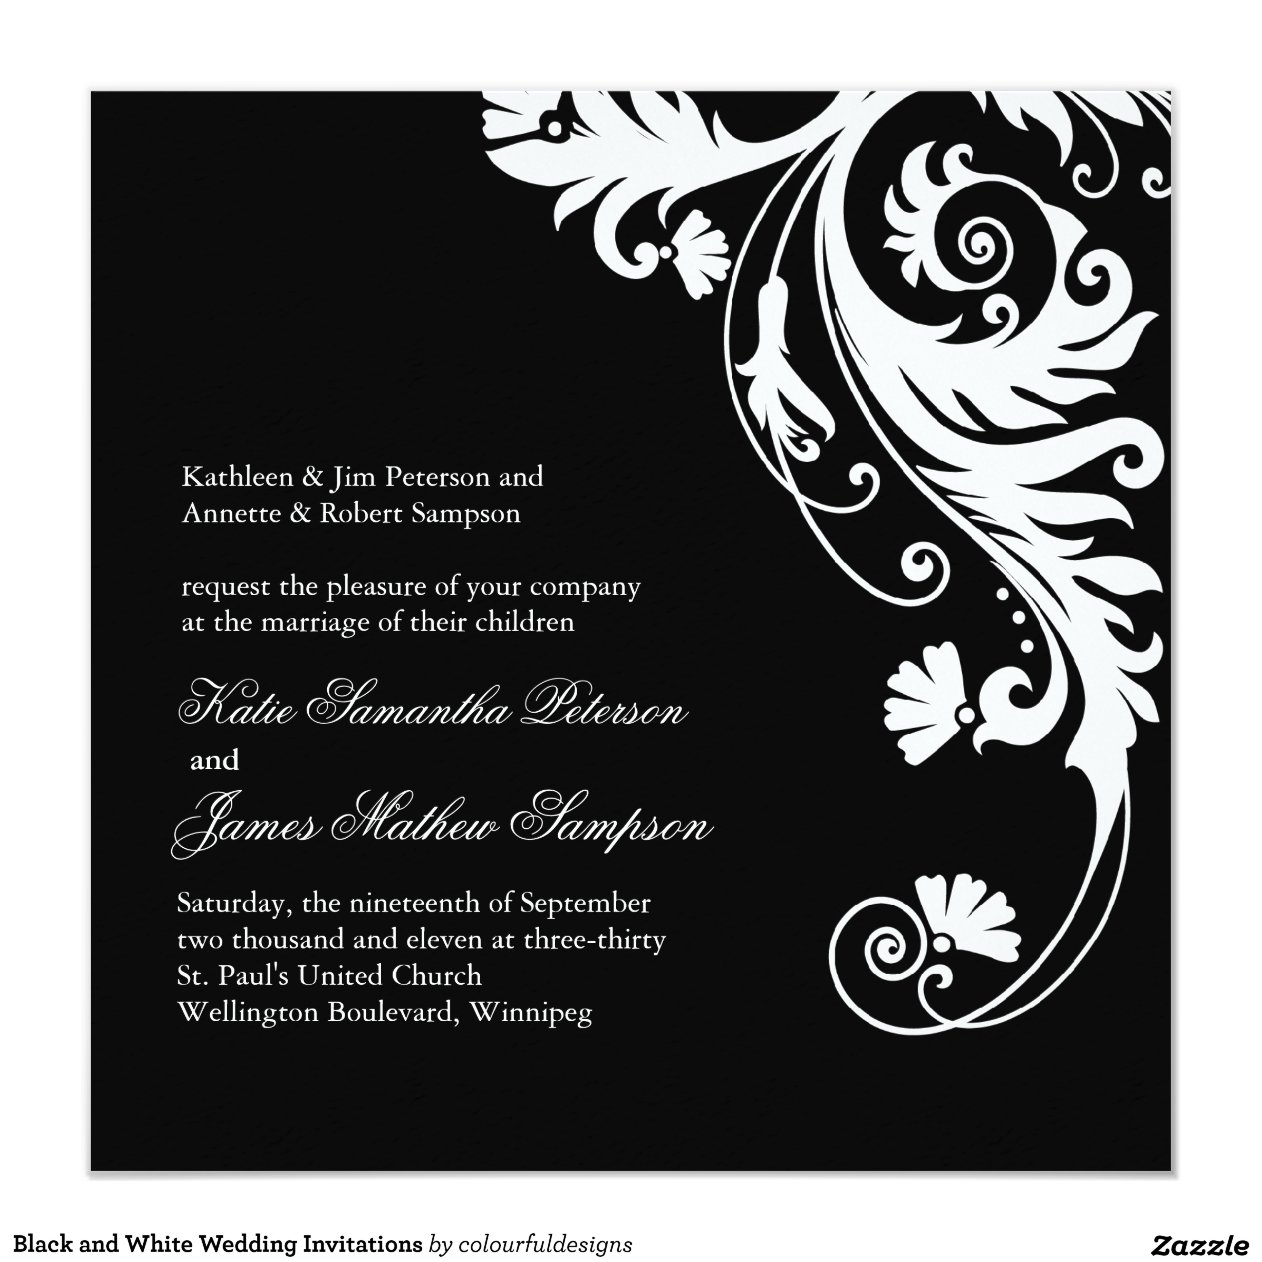 black and white wedding invitations black and white wedding invitations 1826